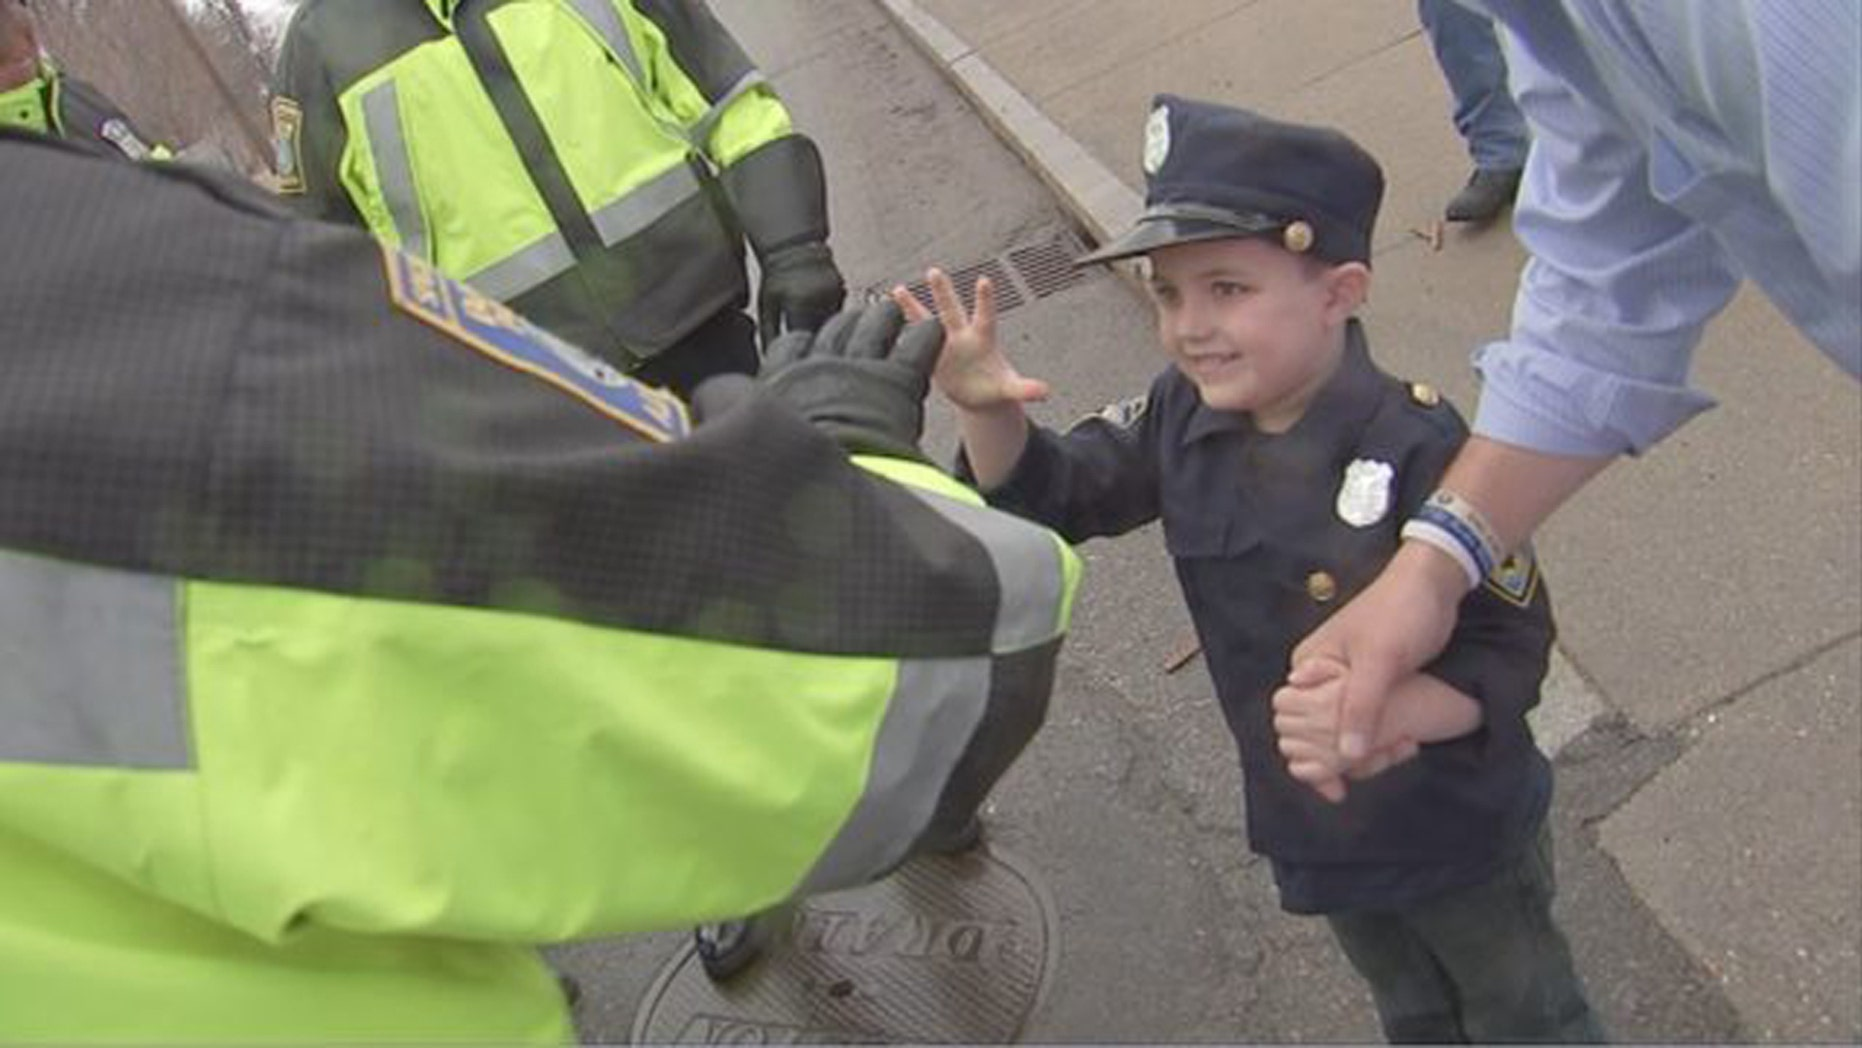 Declan Higgins got to be an honorary Boston Police officer for the day.